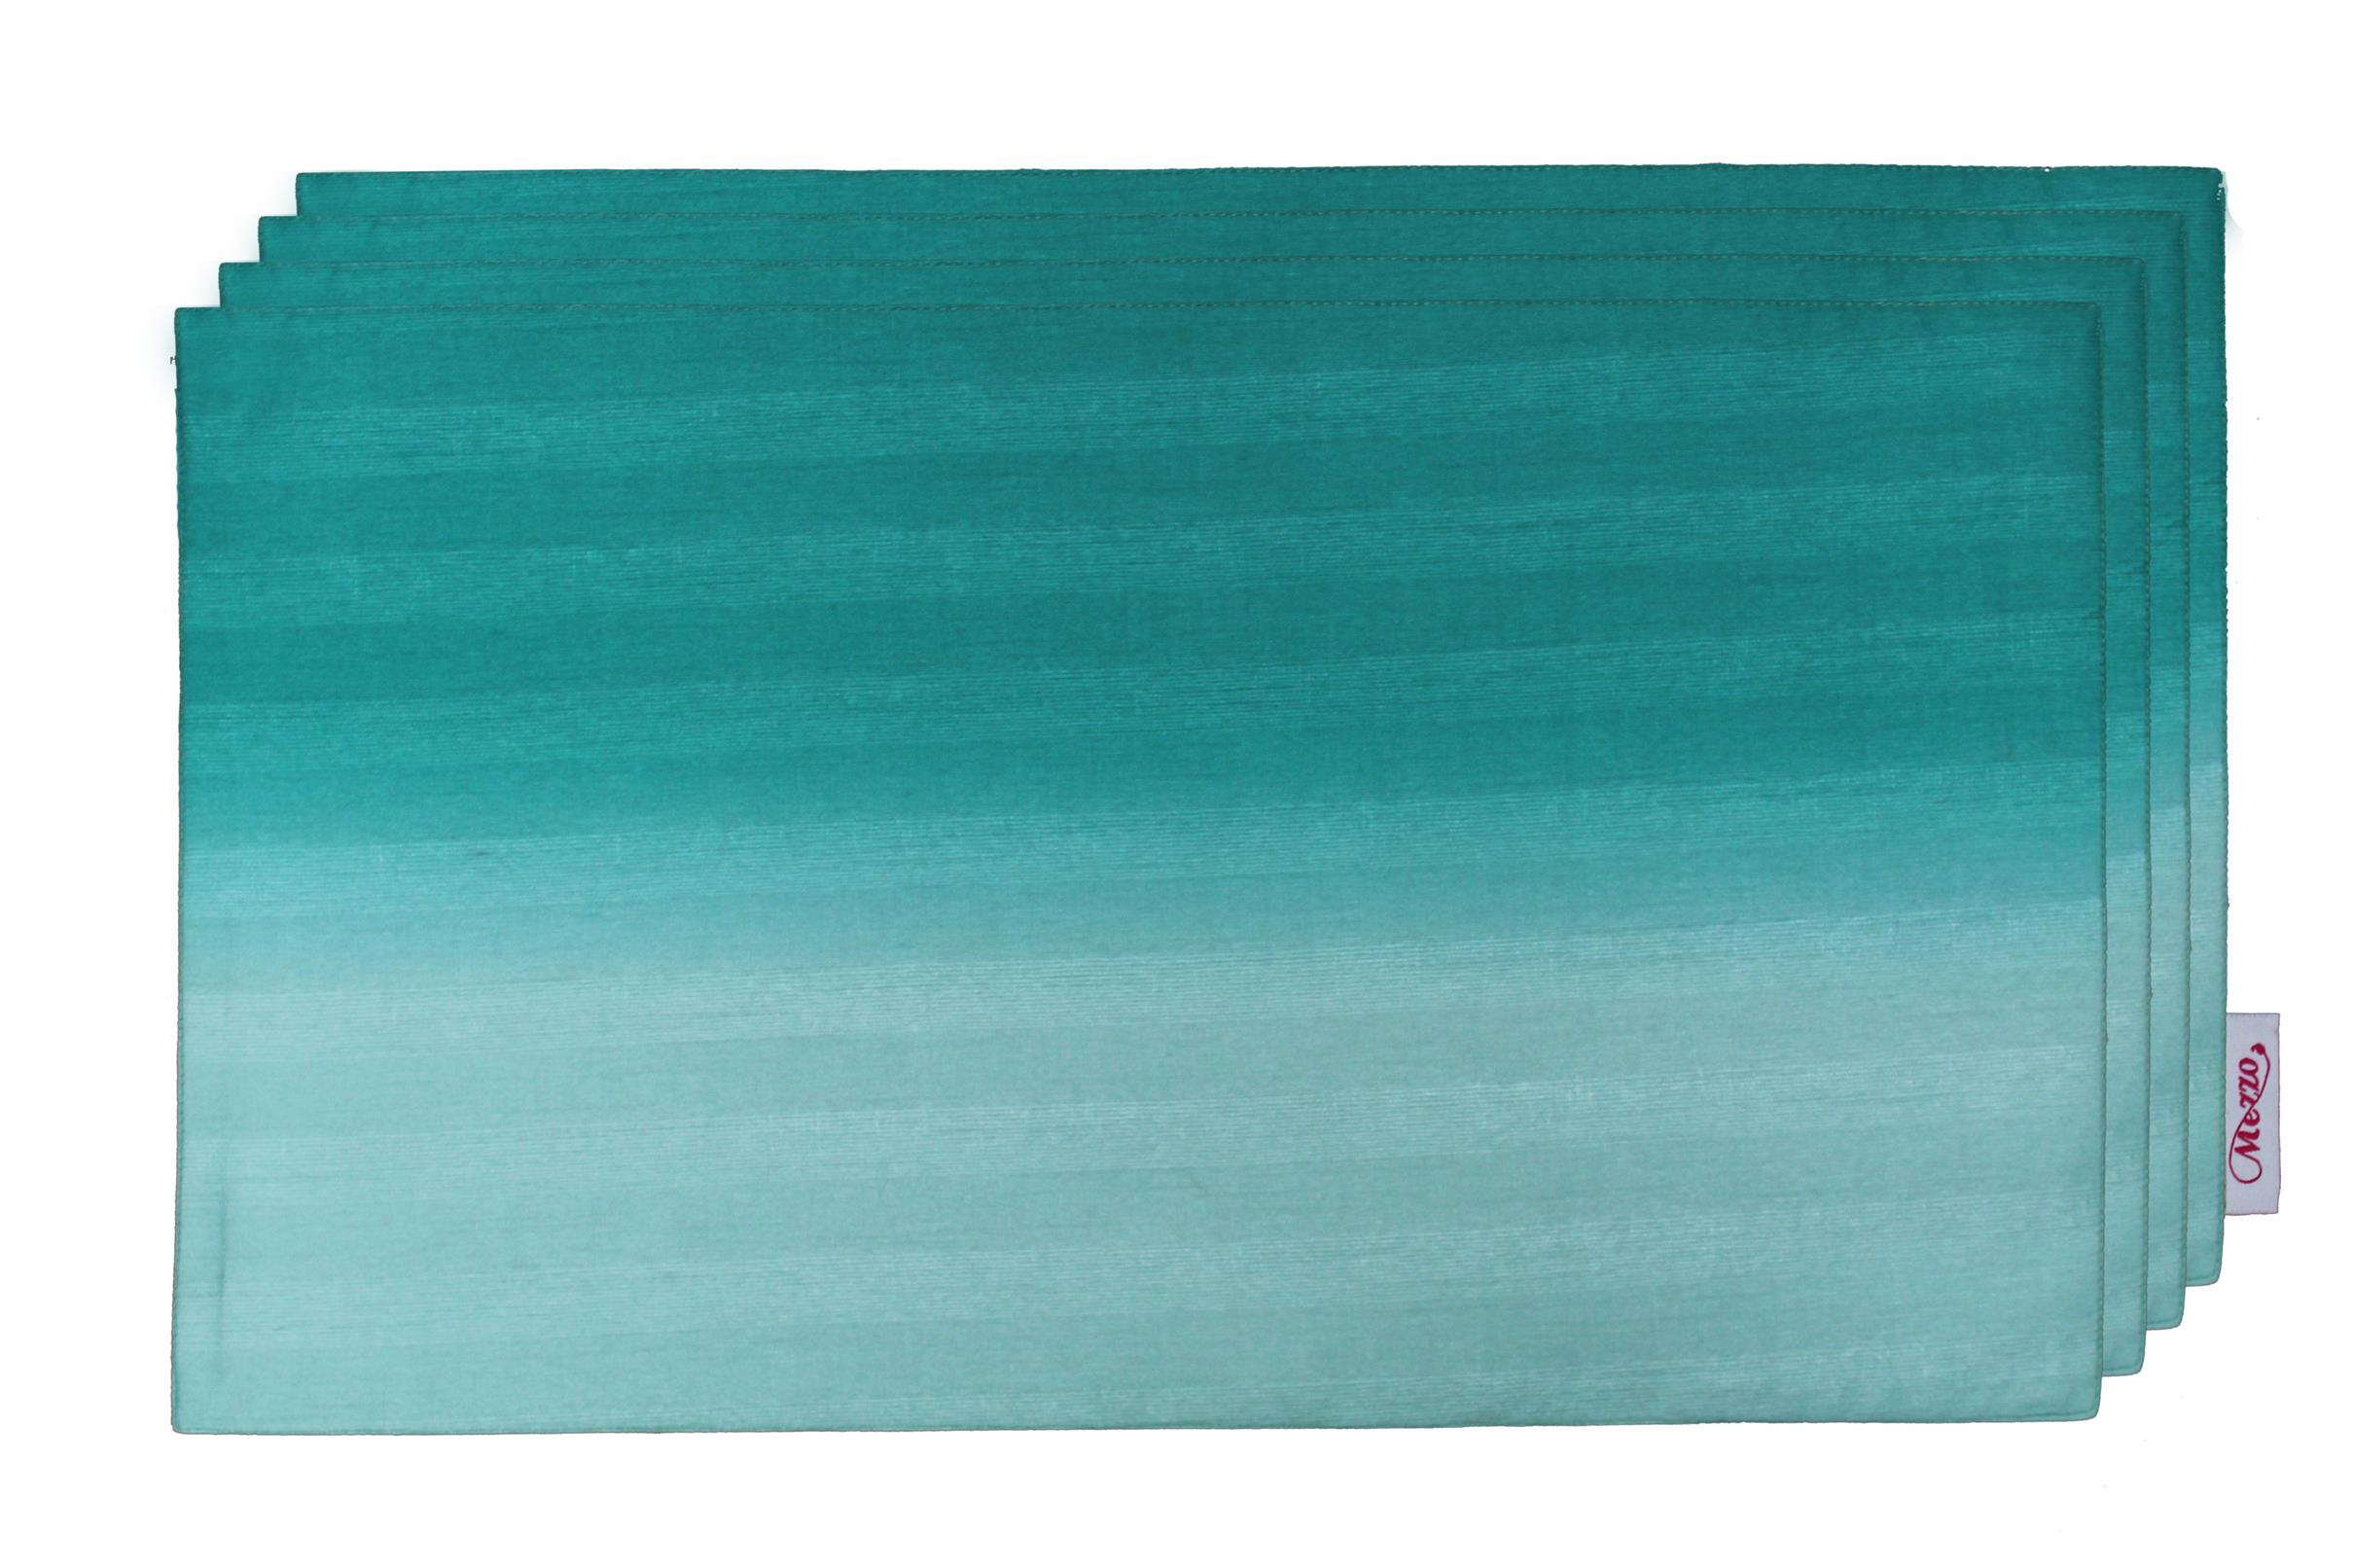 Teal Blue Ombre Placemat